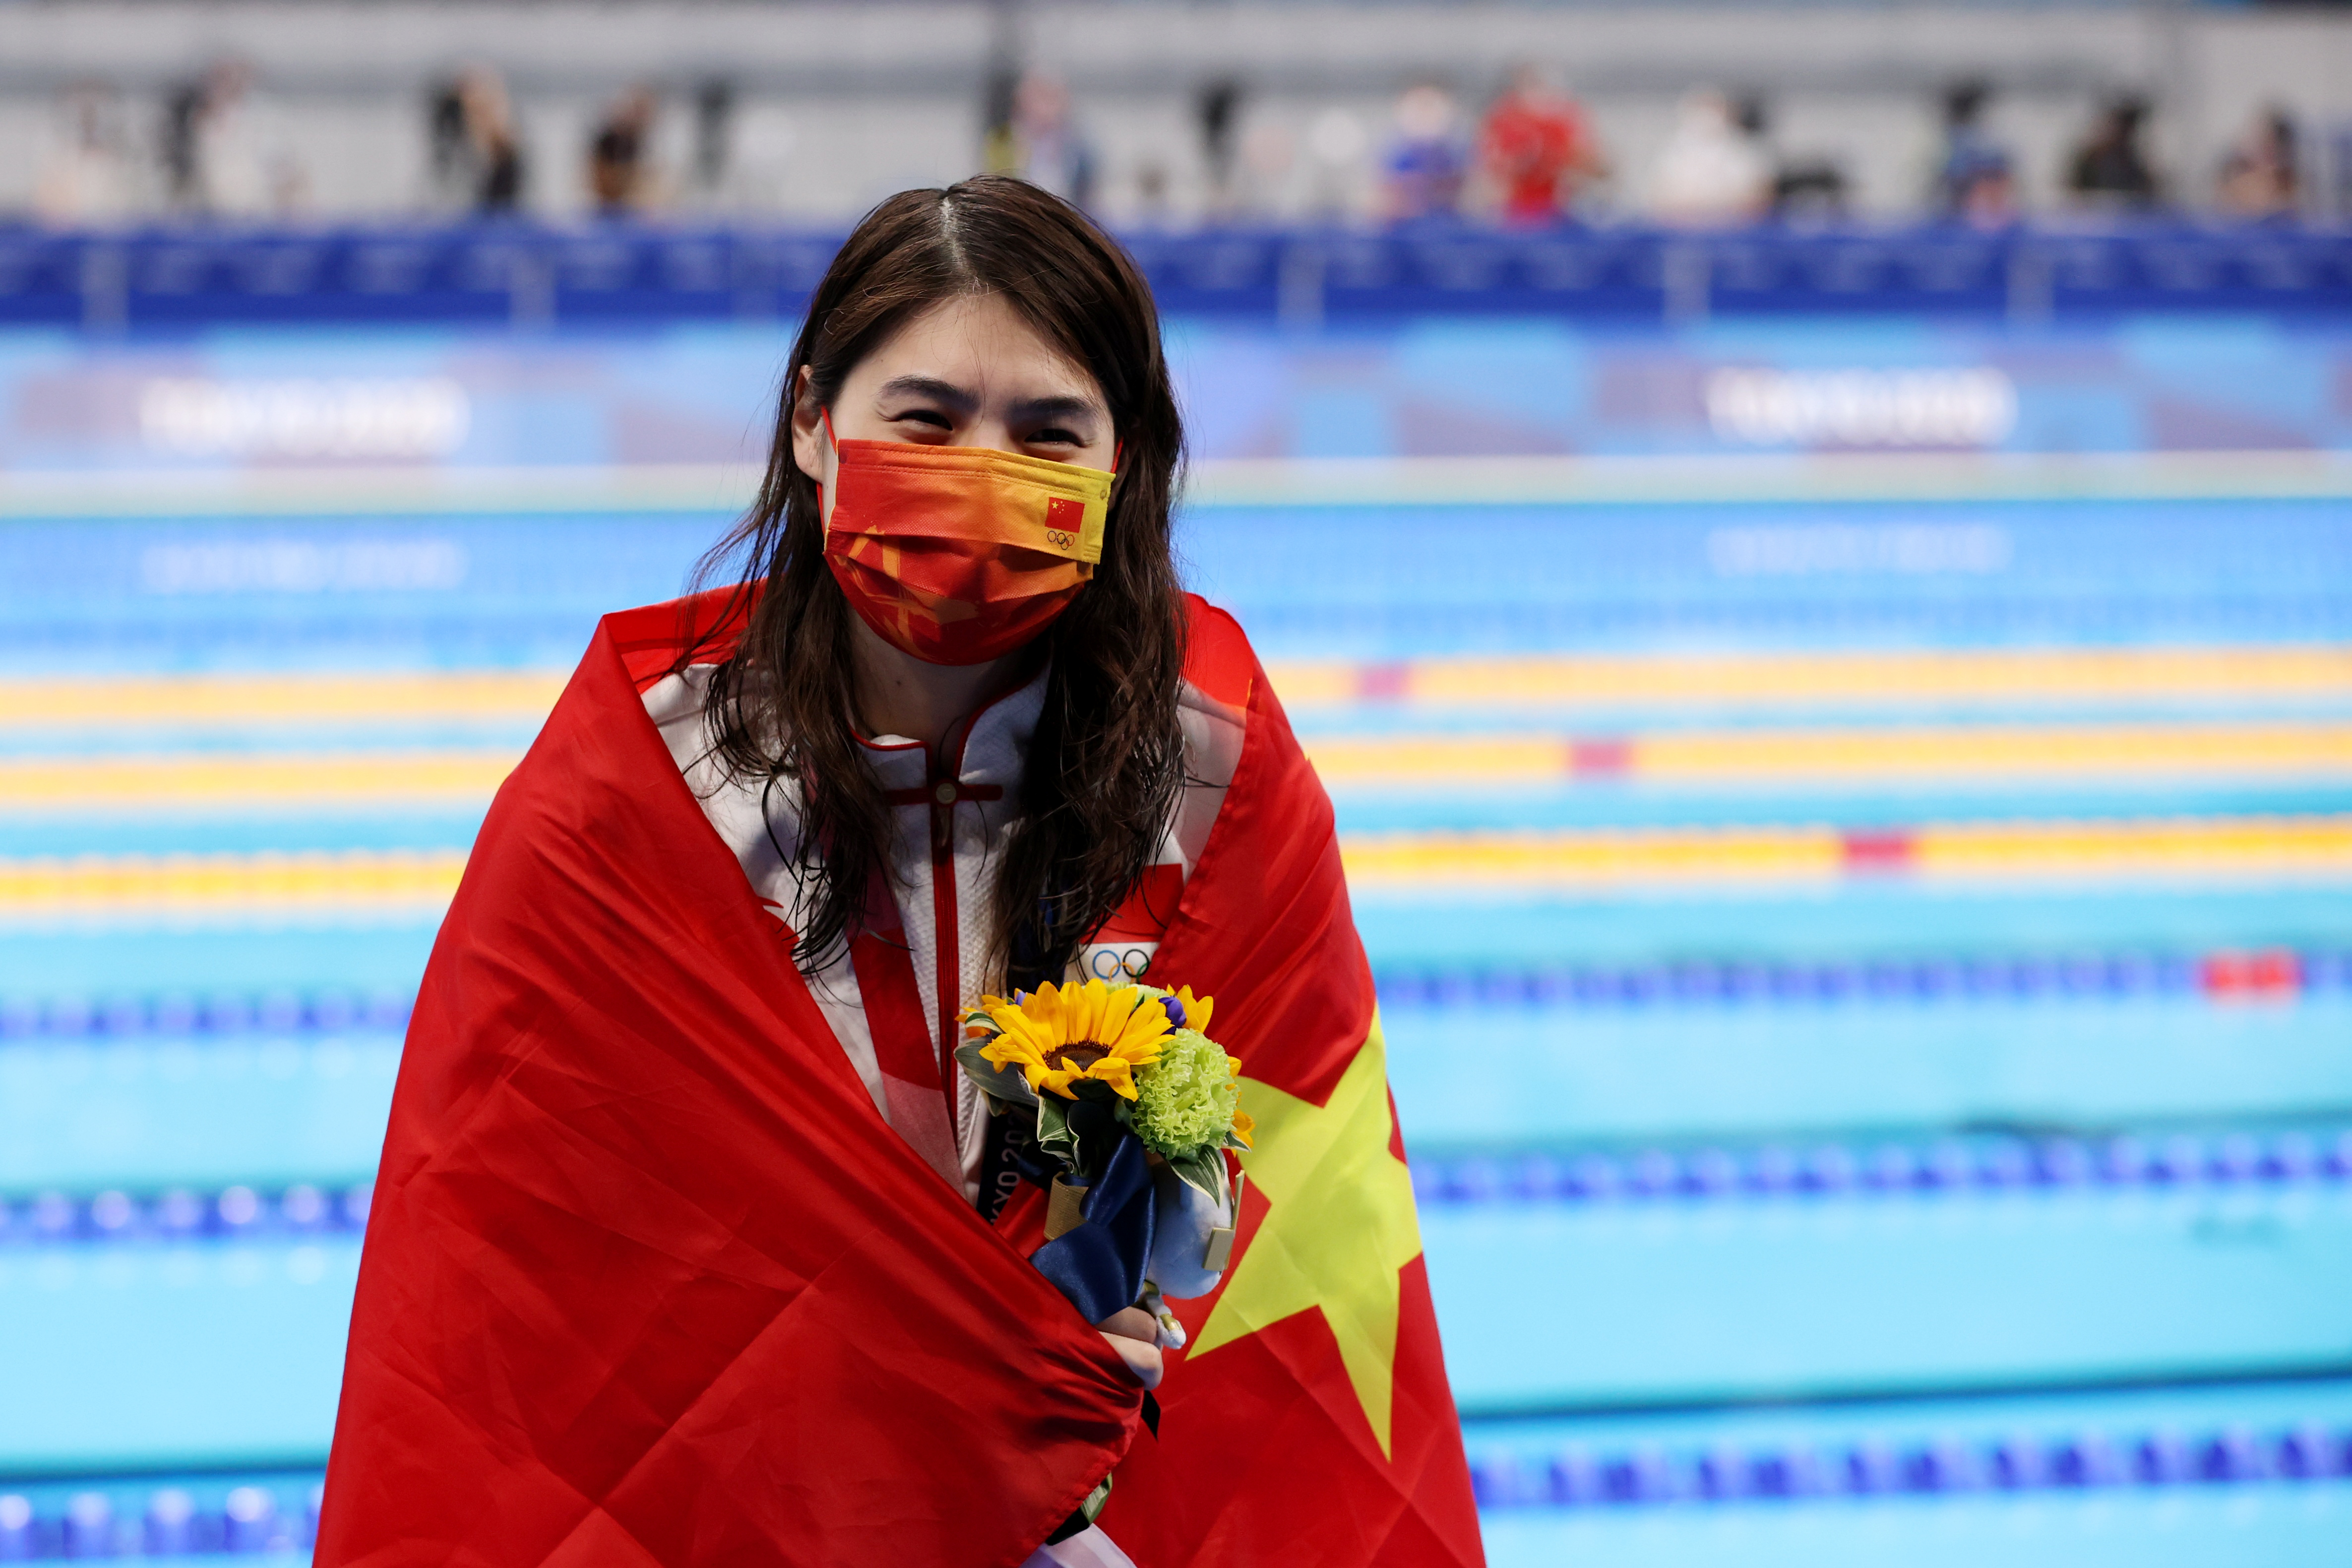 Tokyo 2020 Olympics - Swimming - Women's 200m Butterfly - Medal Ceremony - Tokyo Aquatics Centre - Tokyo, Japan - July 29, 2021. Gold medalist Zhang Yufei of China celebrates on the podium REUTERS/Molly Darlington